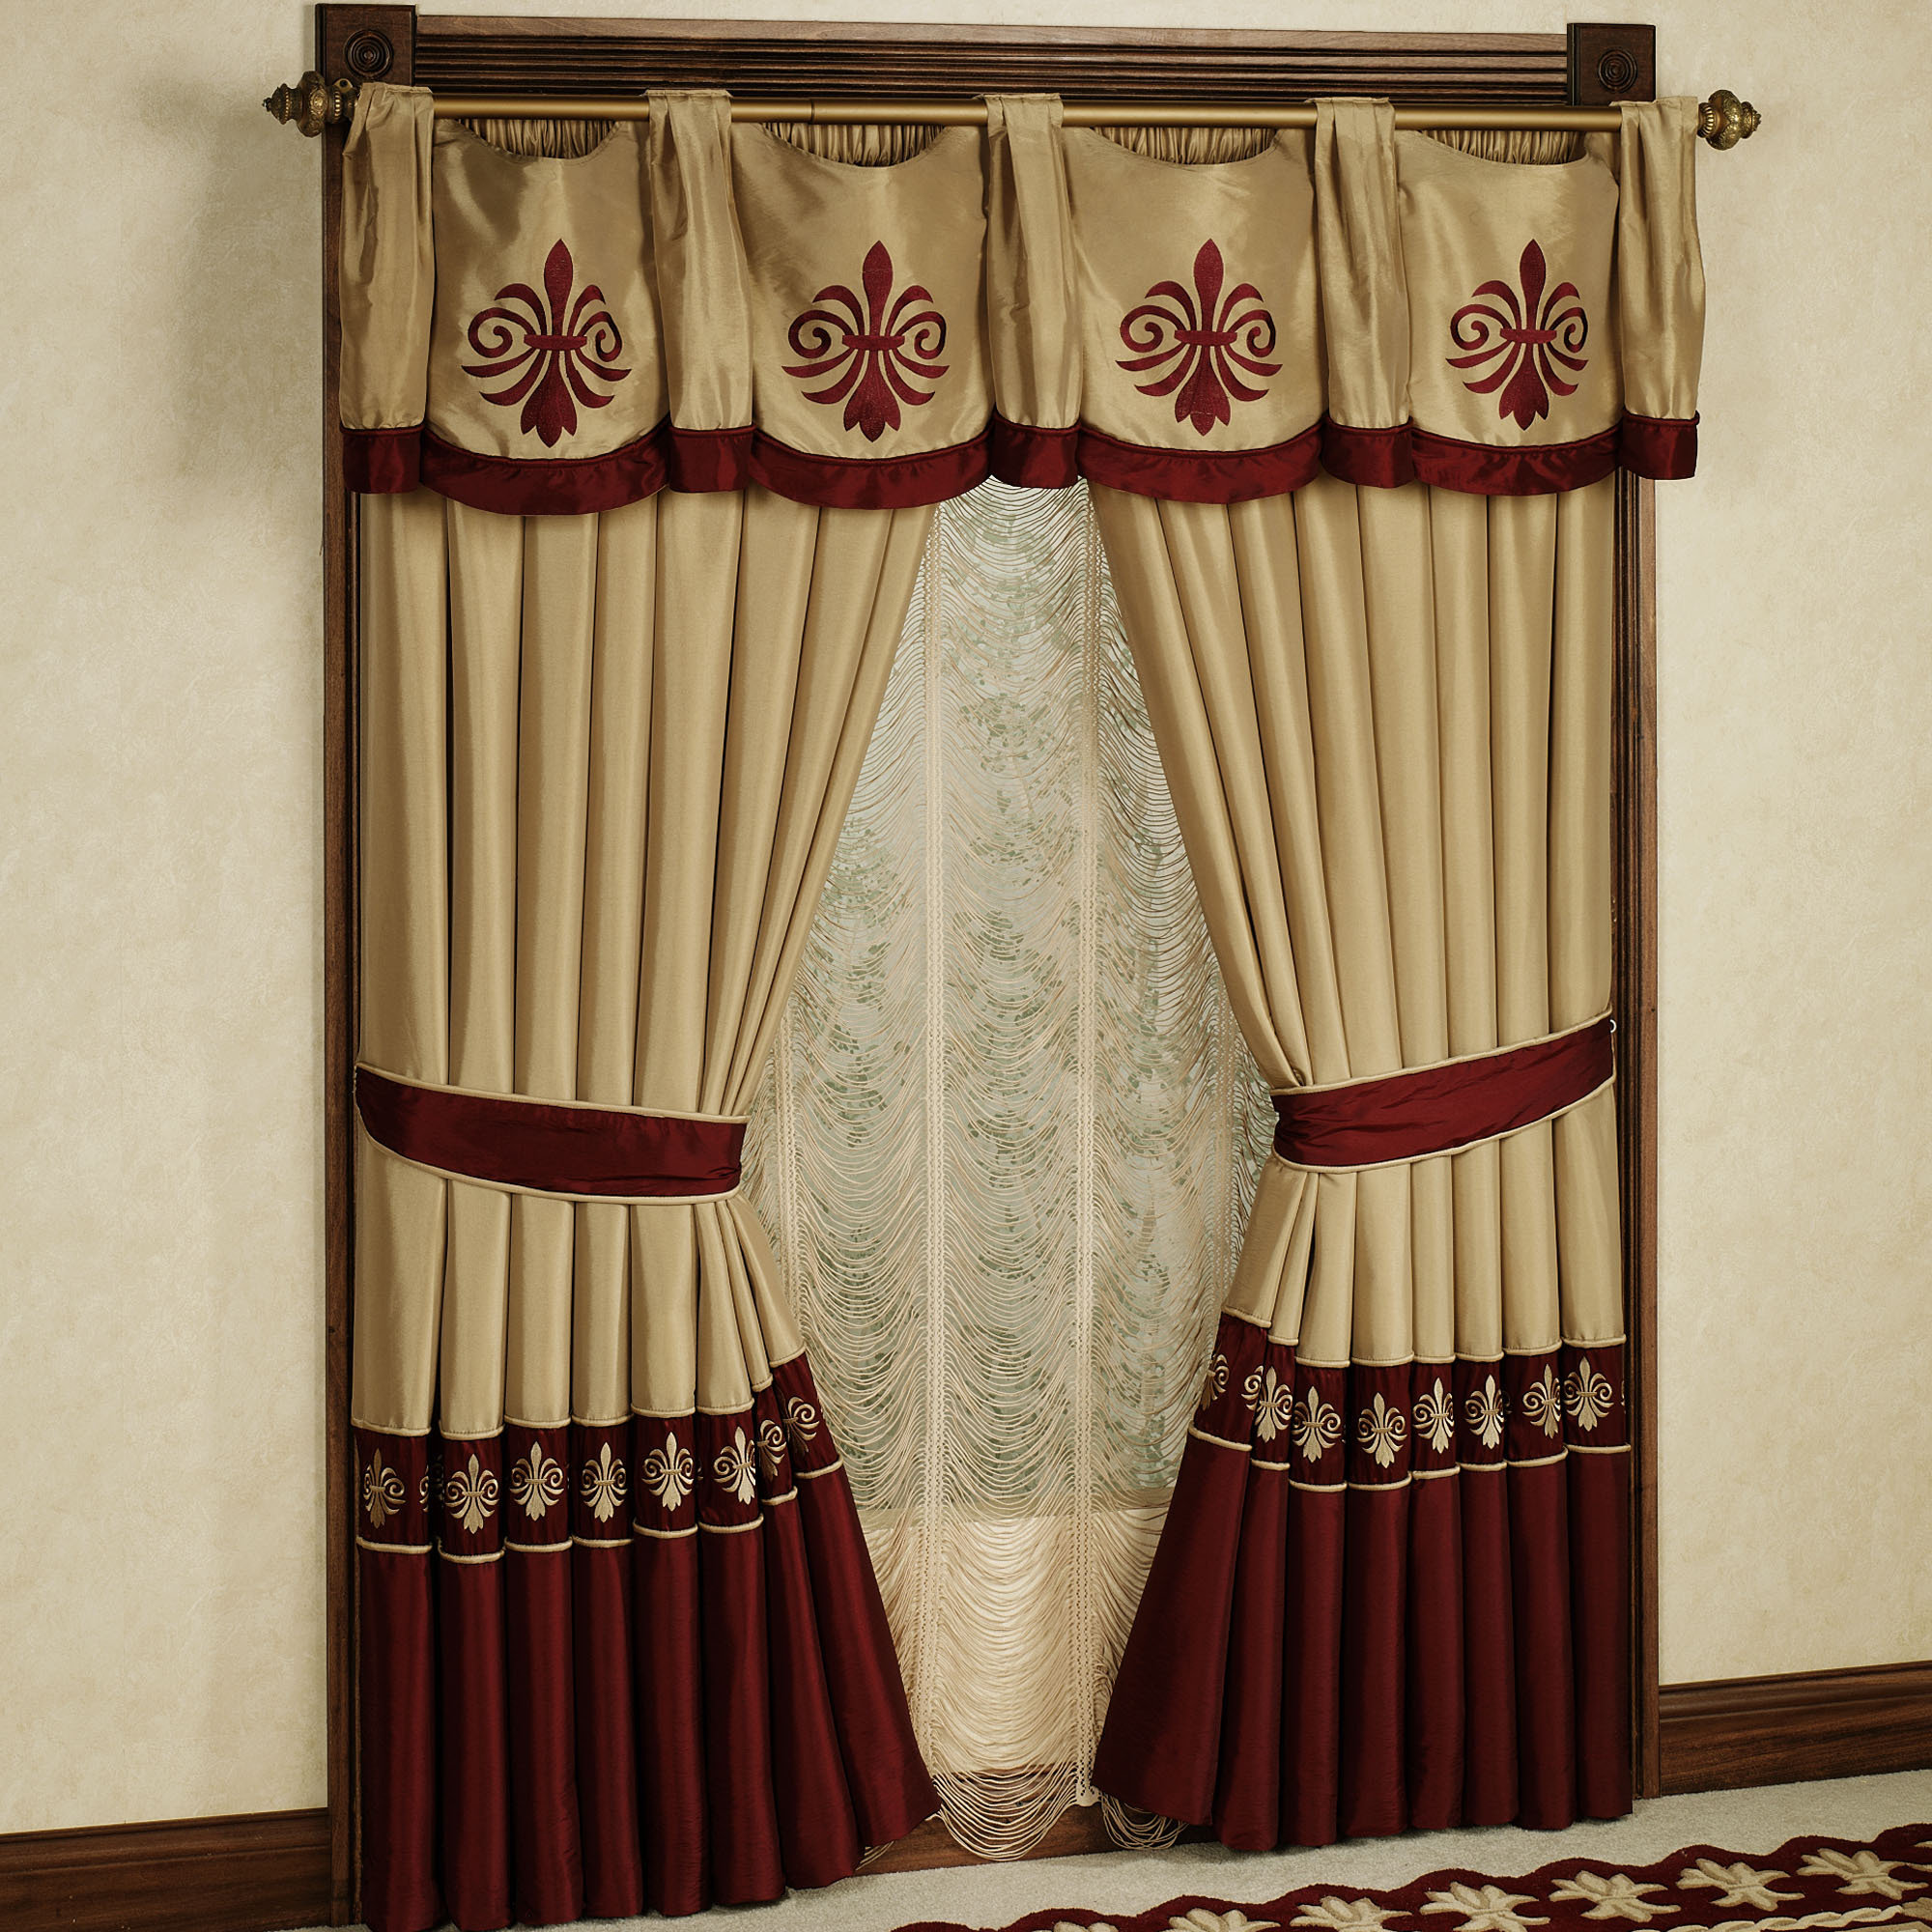 small-country-curtain-ideas